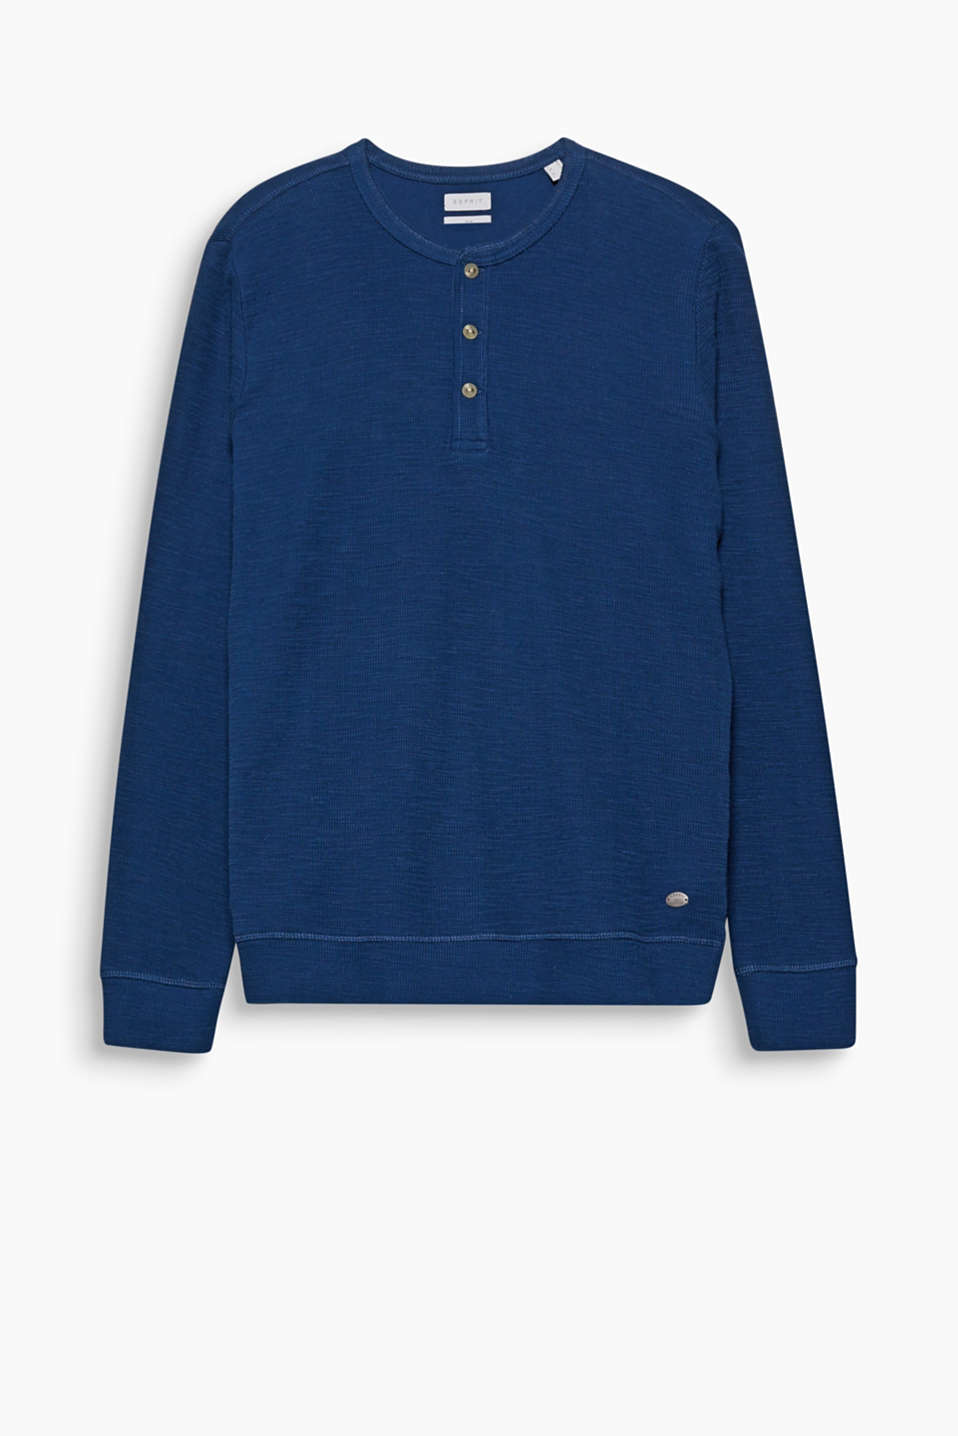 This essential piece is a must for every wardrobe: long sleeve top with a Henley neckline, made of slub jersey in cotton